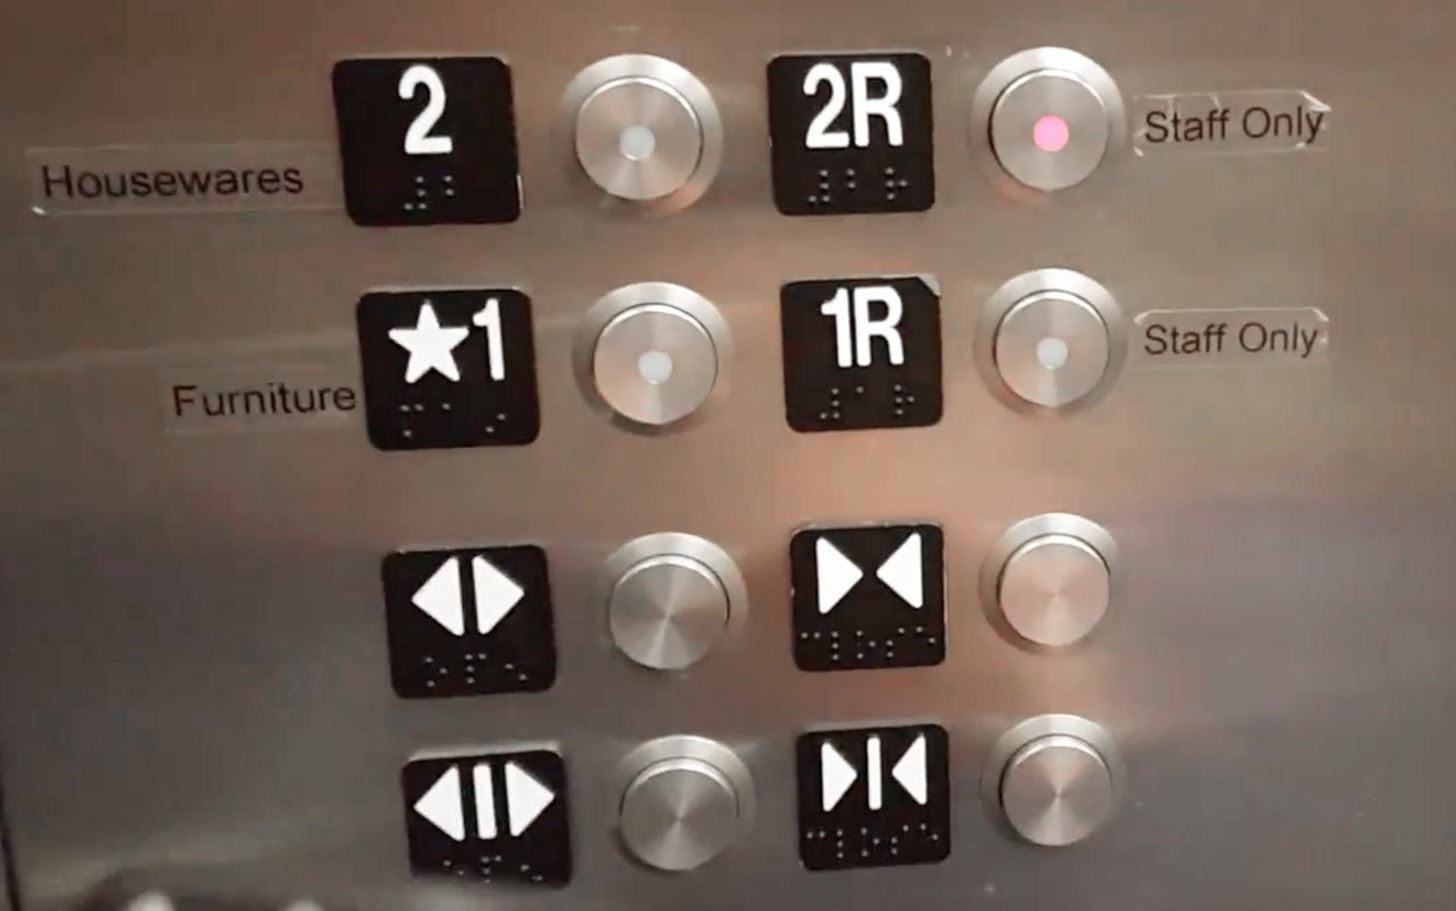 Hacking Elevators: How to Bypass Access Control Systems to Visit